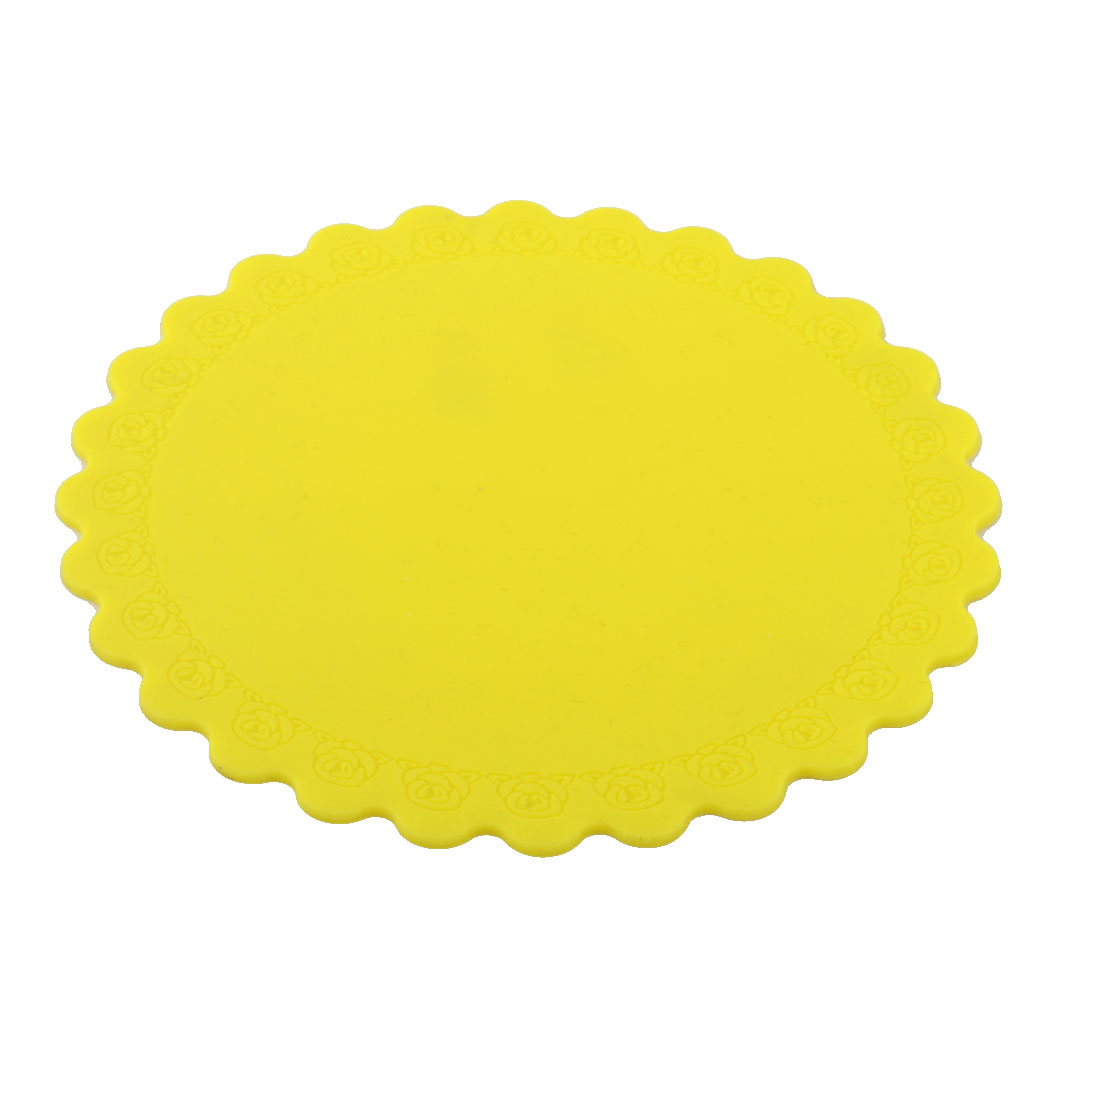 Silicone Rose Carven Table Heat Resistant Mat Cup Coaster Cushion Placemat Pad Yellow